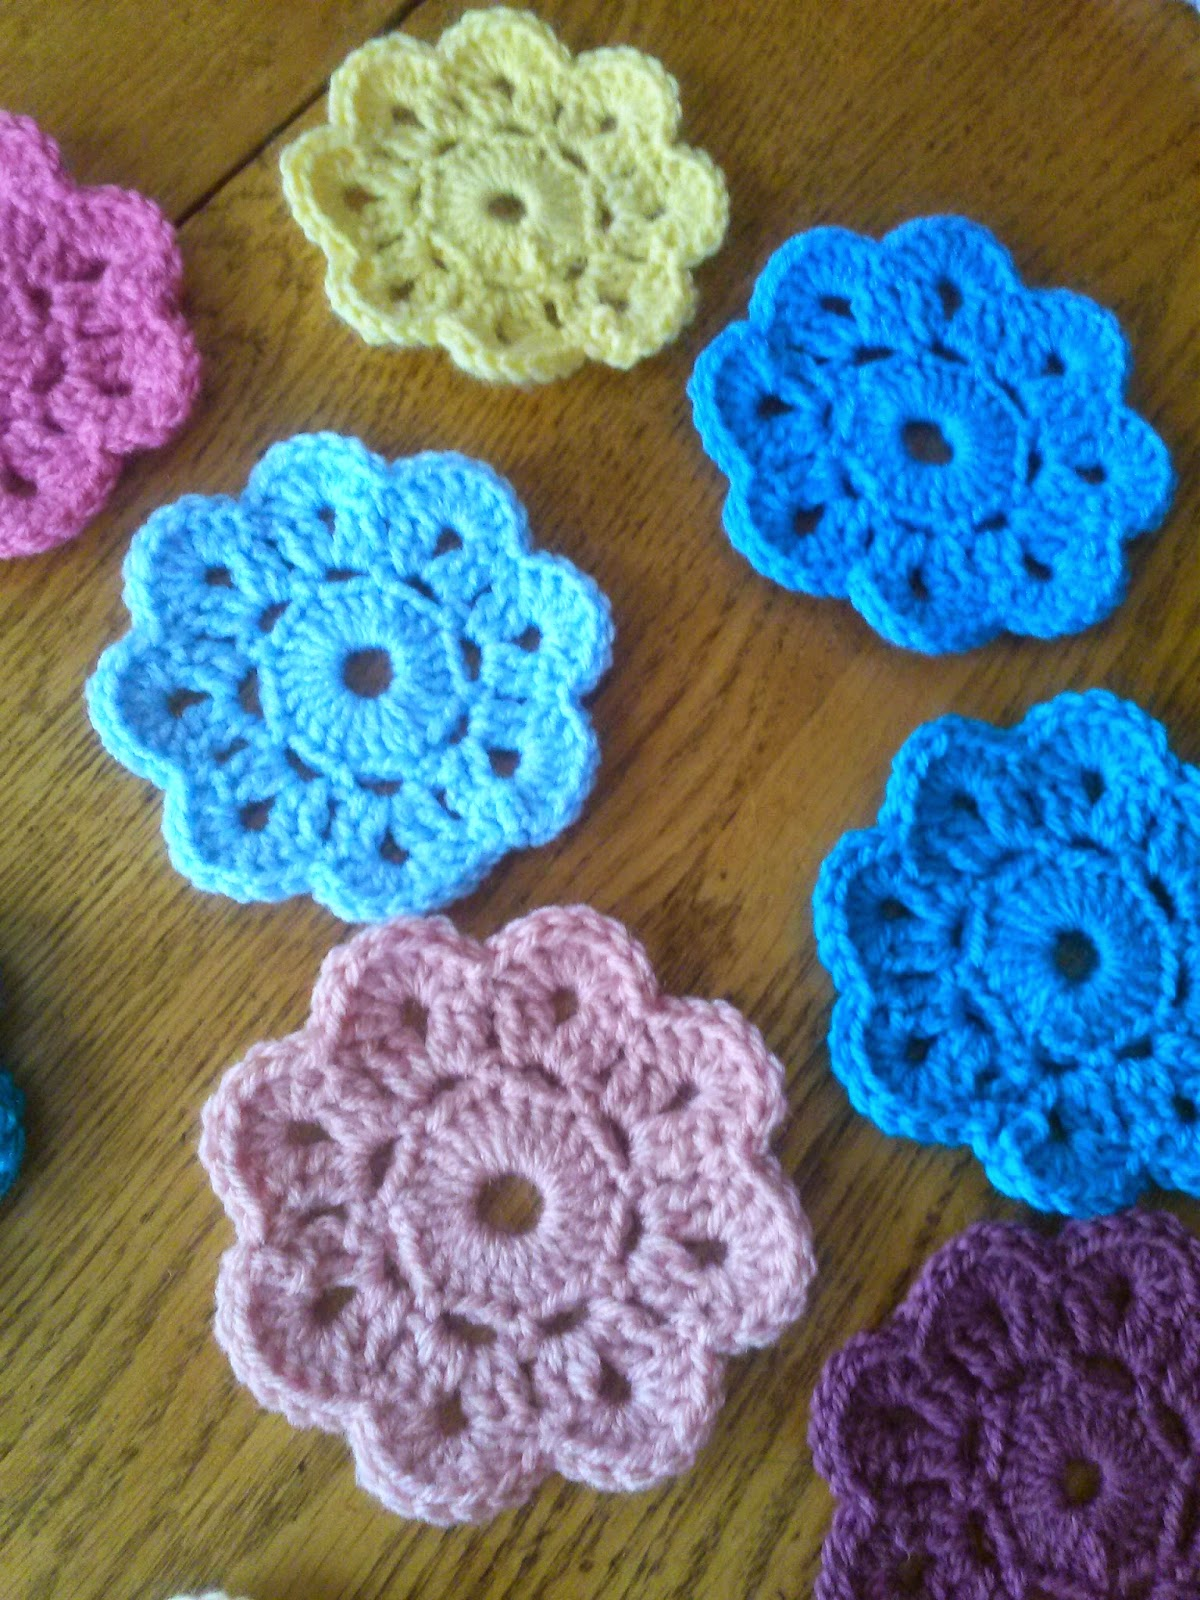 Maybelle crochet flower free pattern manet for keep on keeping on a maybelle flower garland and a square maybelle crochet flower free pattern bankloansurffo Images